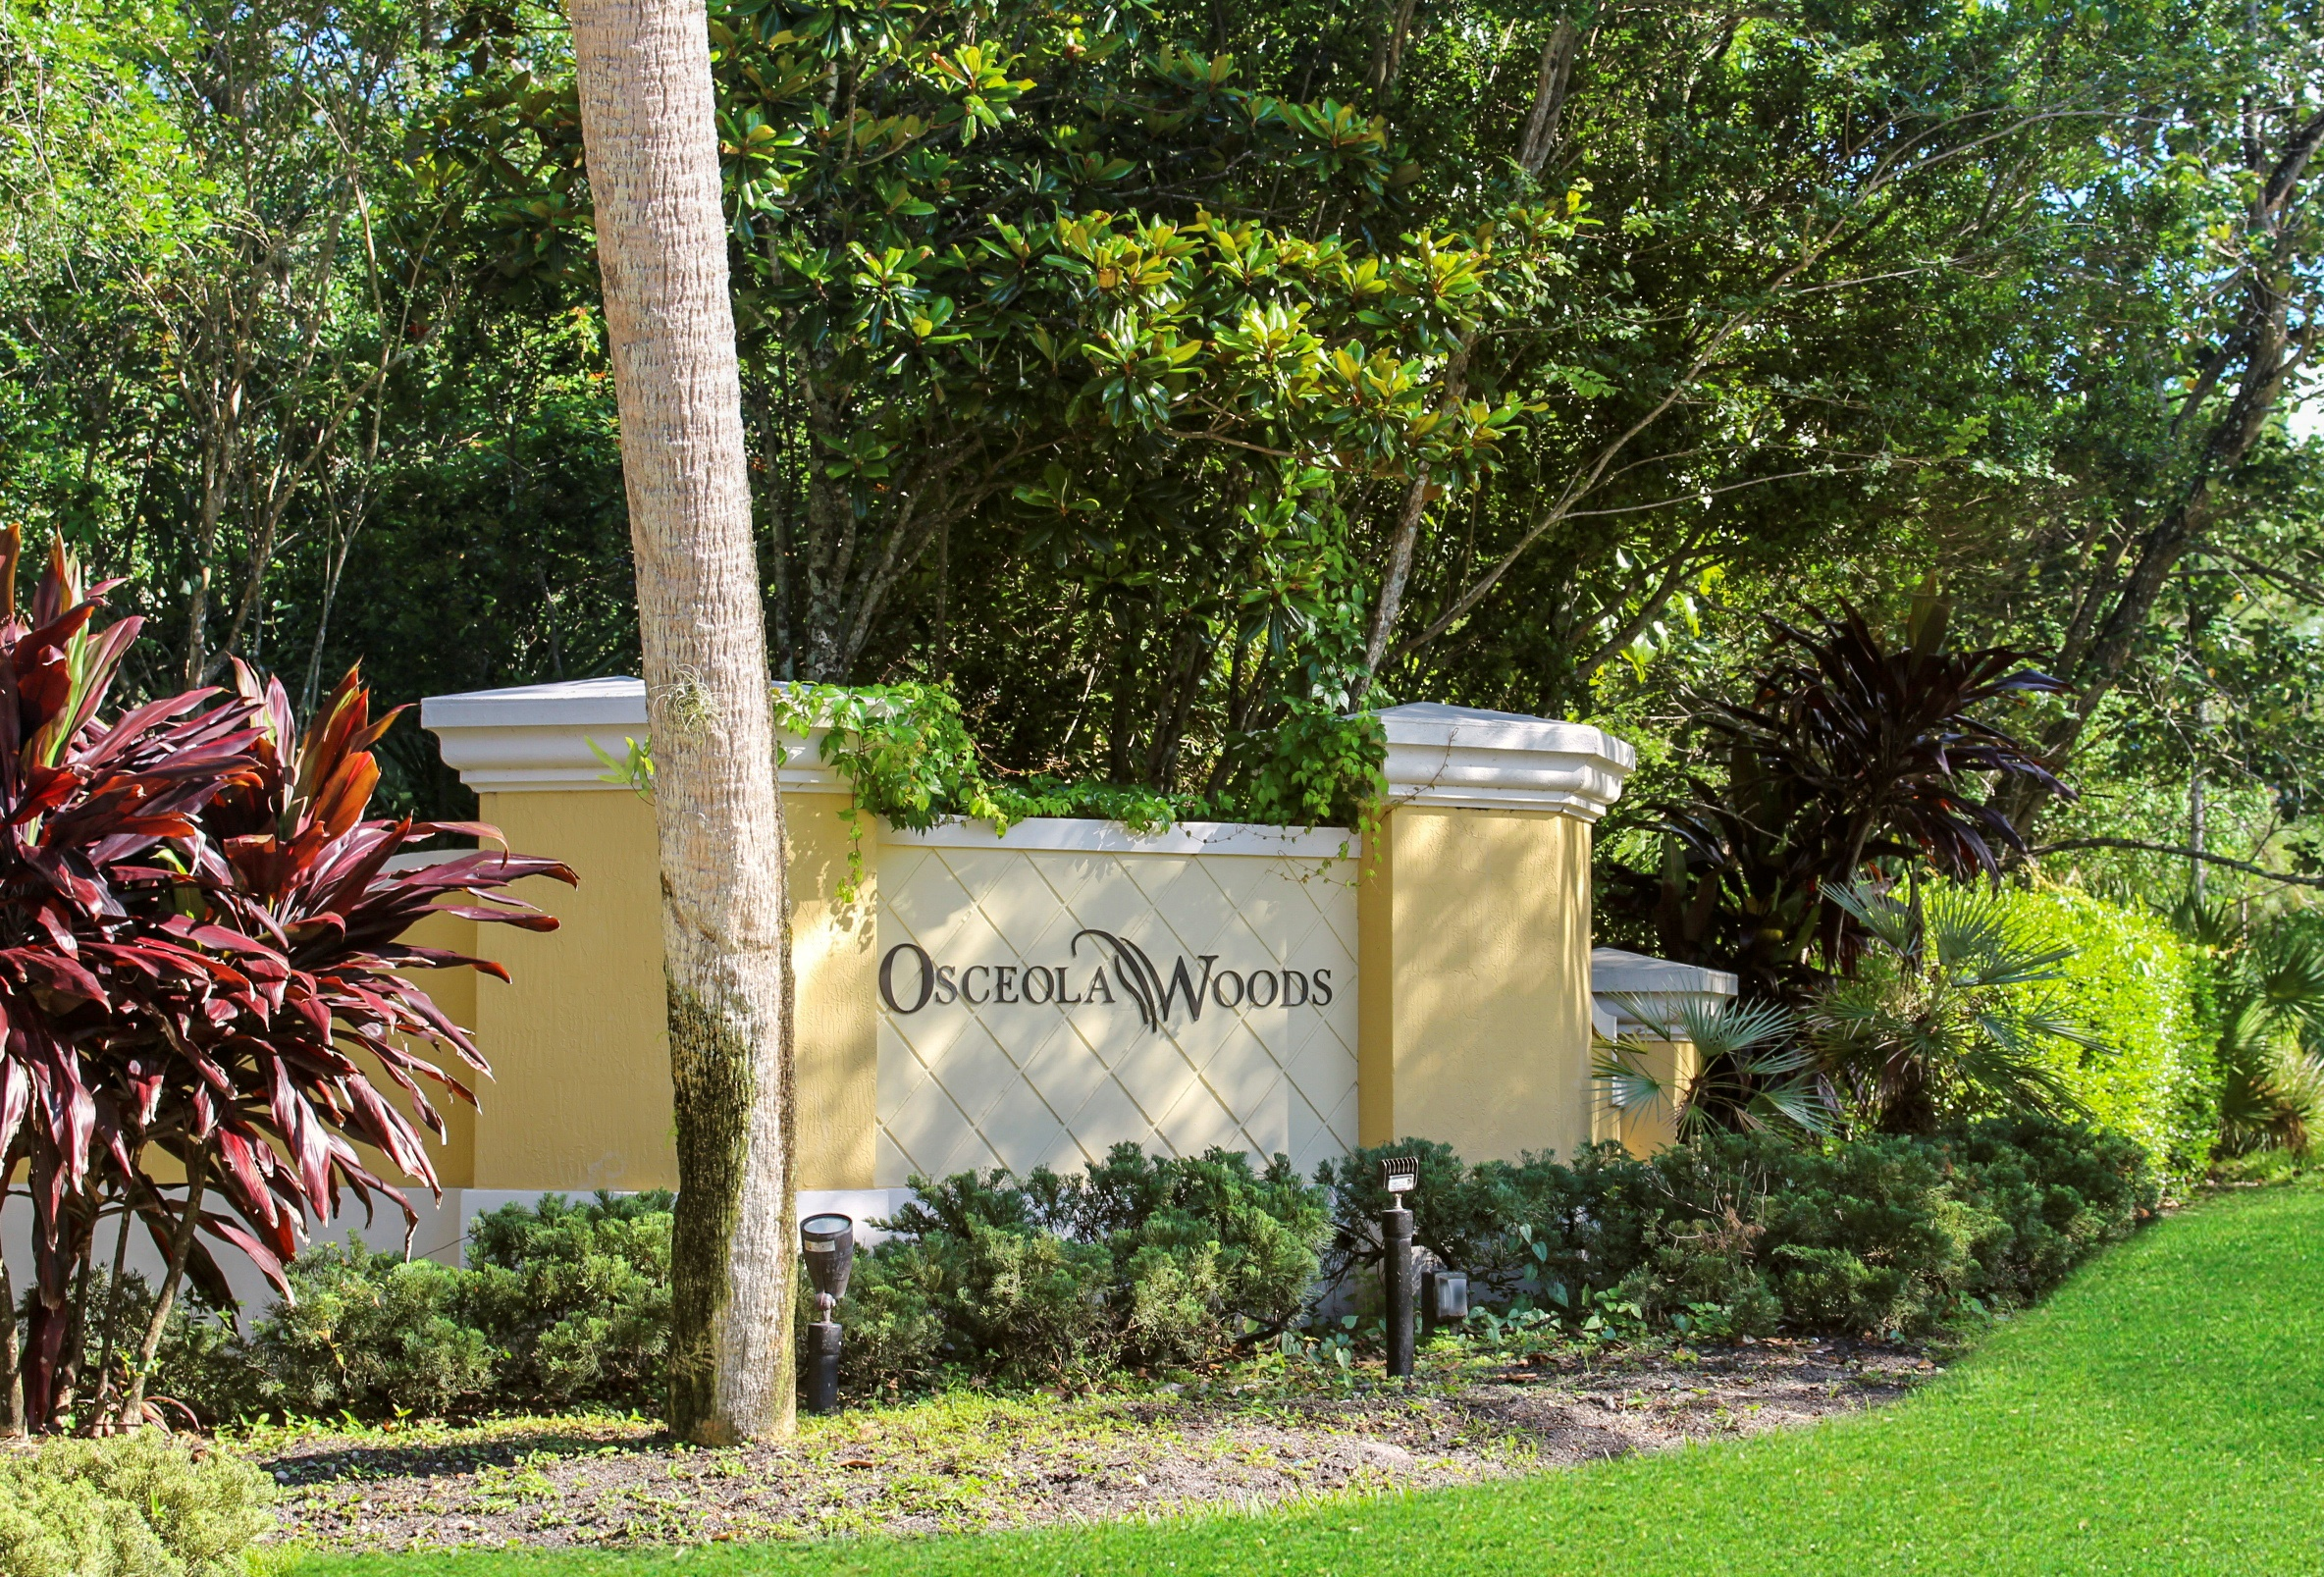 Osceola Woods Real Estate and Townhomes for Sale in Osceola Woods